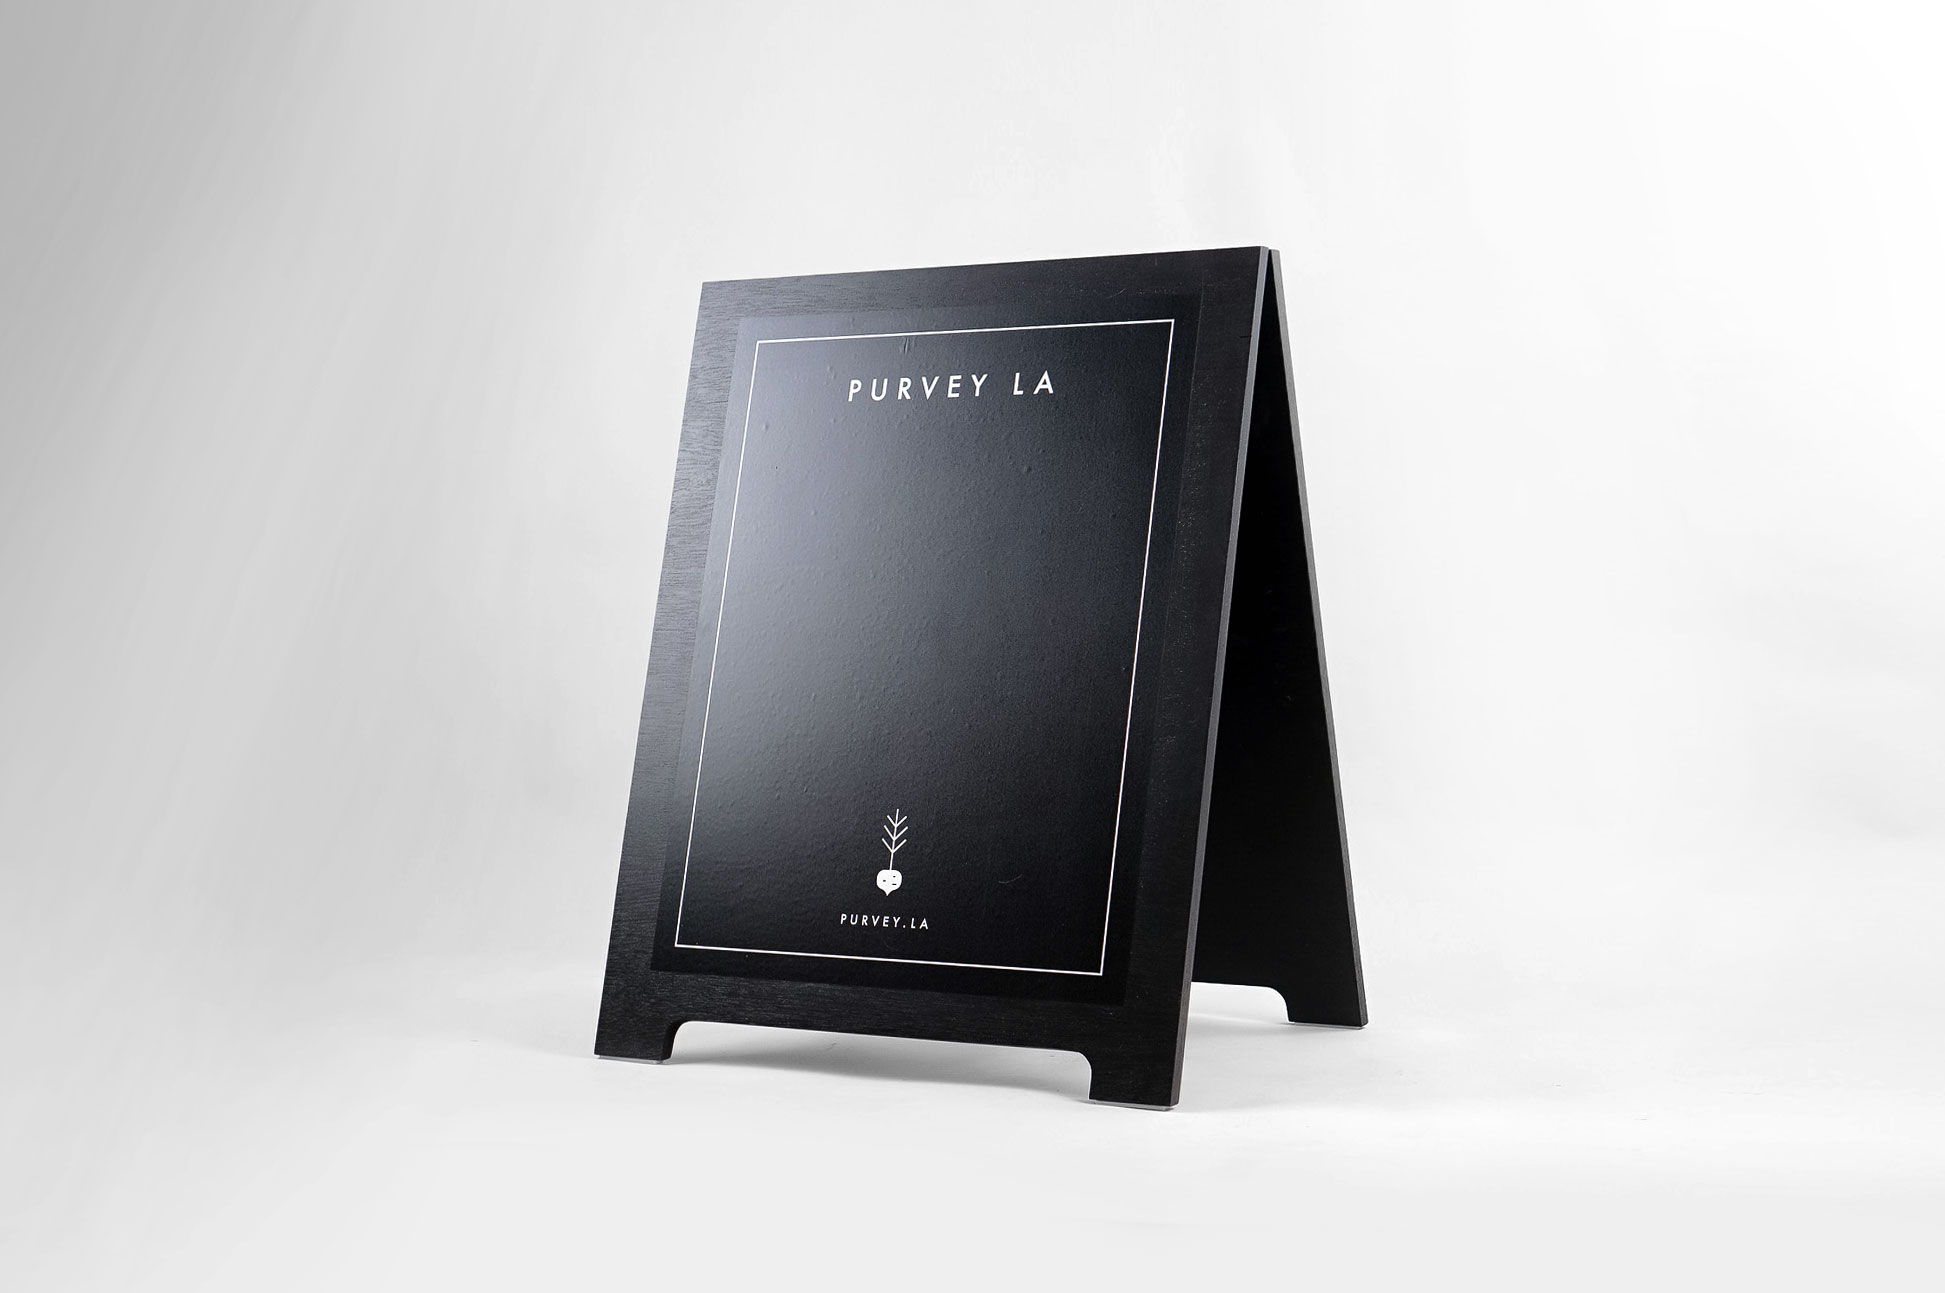 All black modern chalkboard sidewalk/farmer's market a-frame sign for Purvey, a Los Angeles based business delivering ready-to-eat, family-style meals to offices and families.